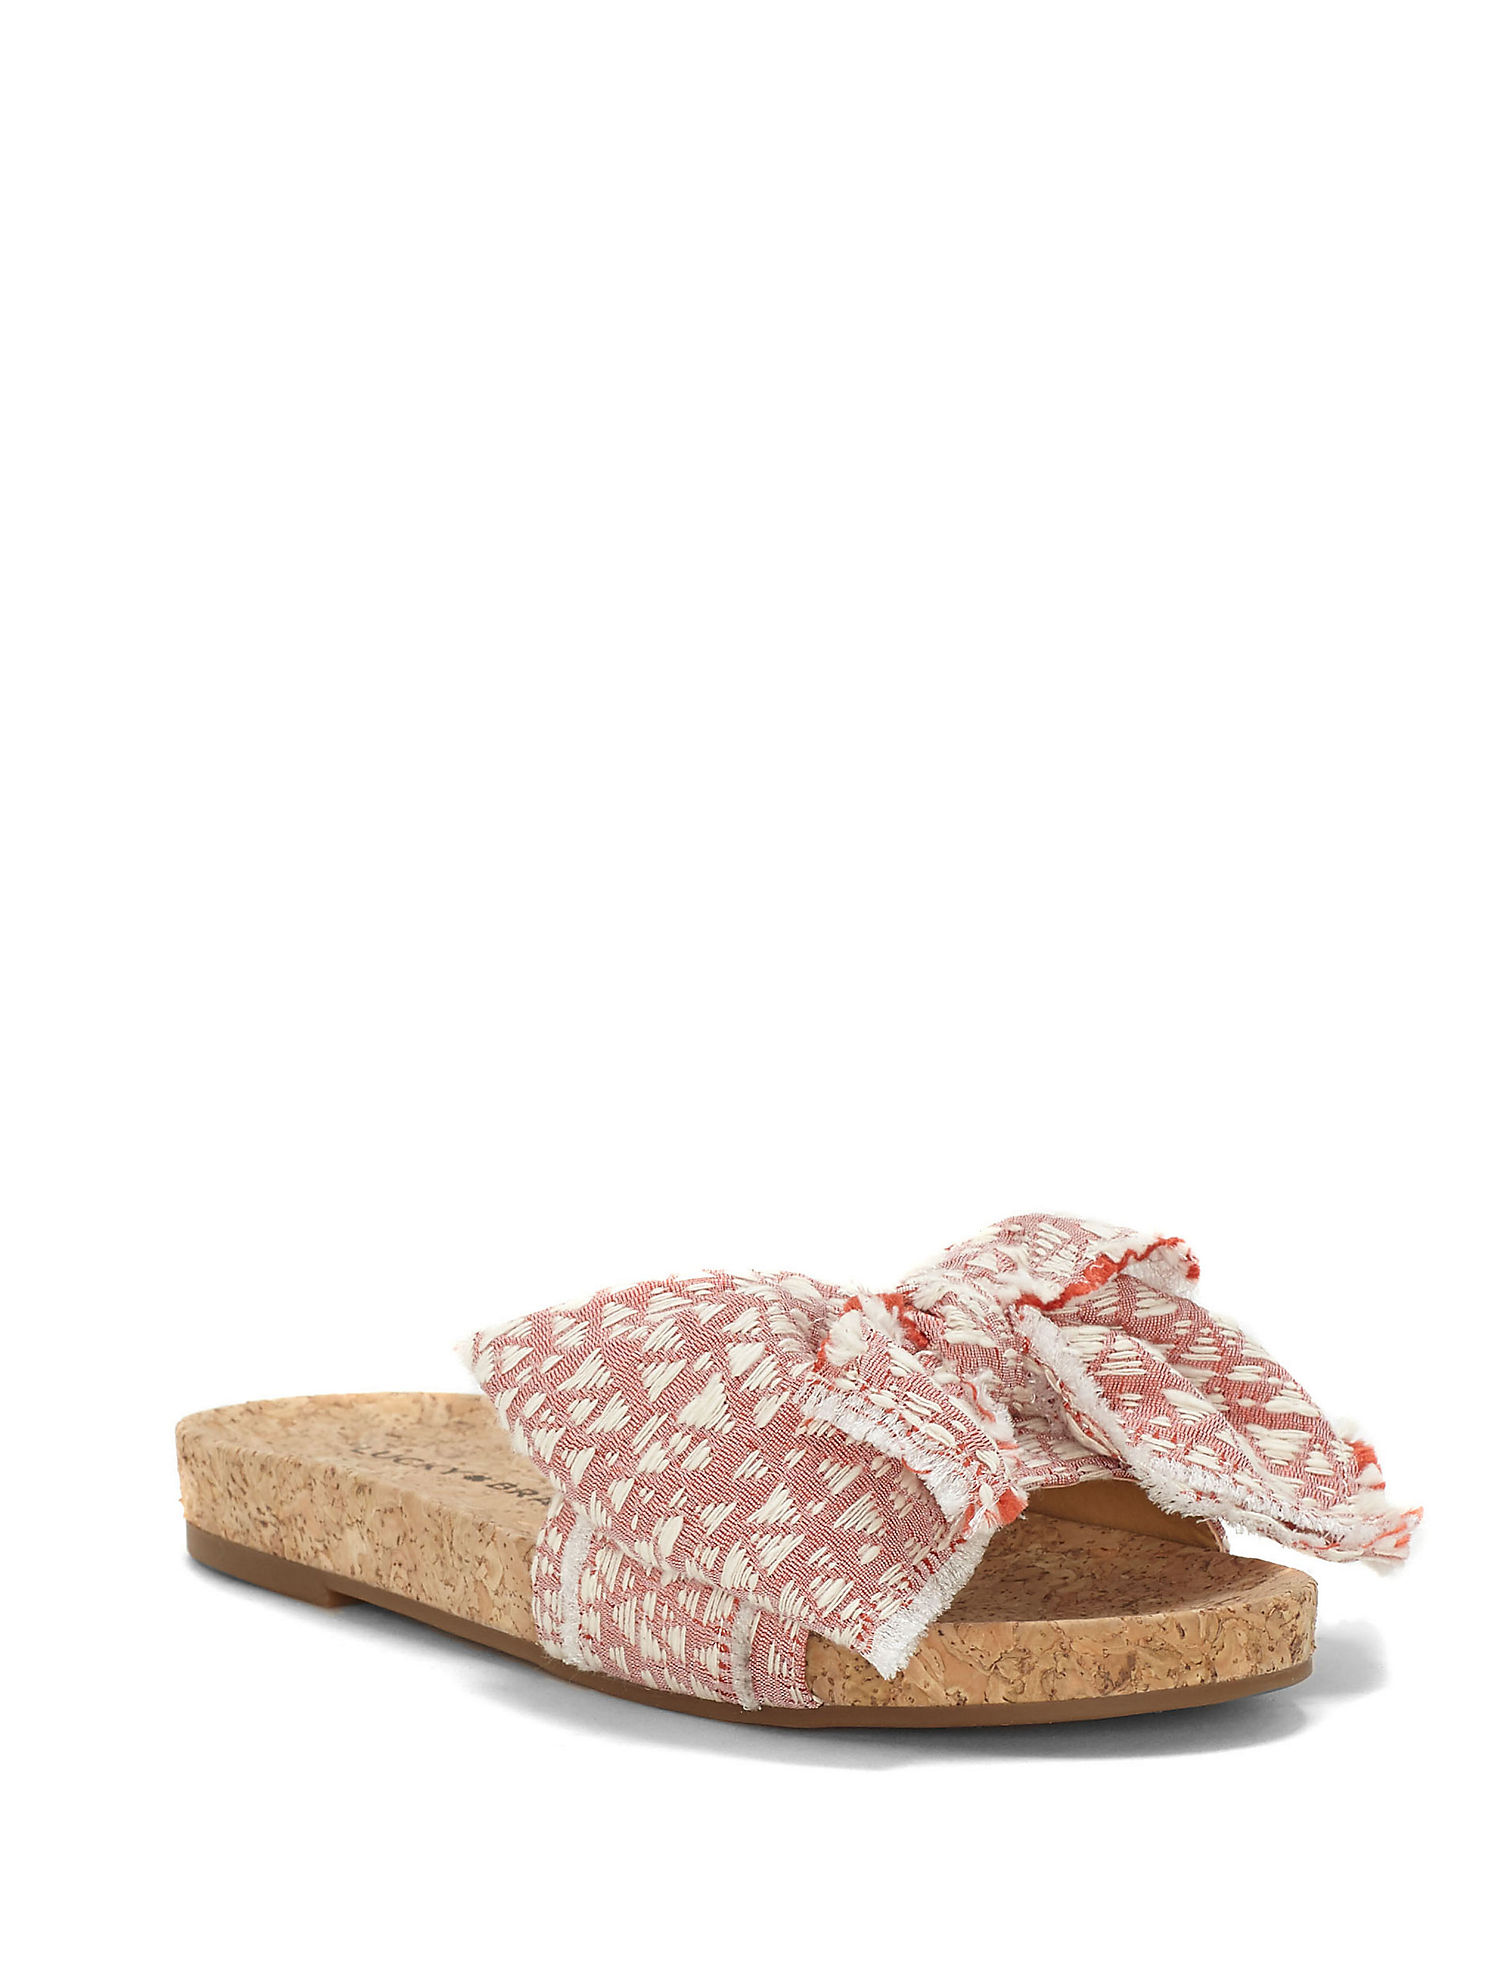 Floella Denim Slide Sandals CzeCXy